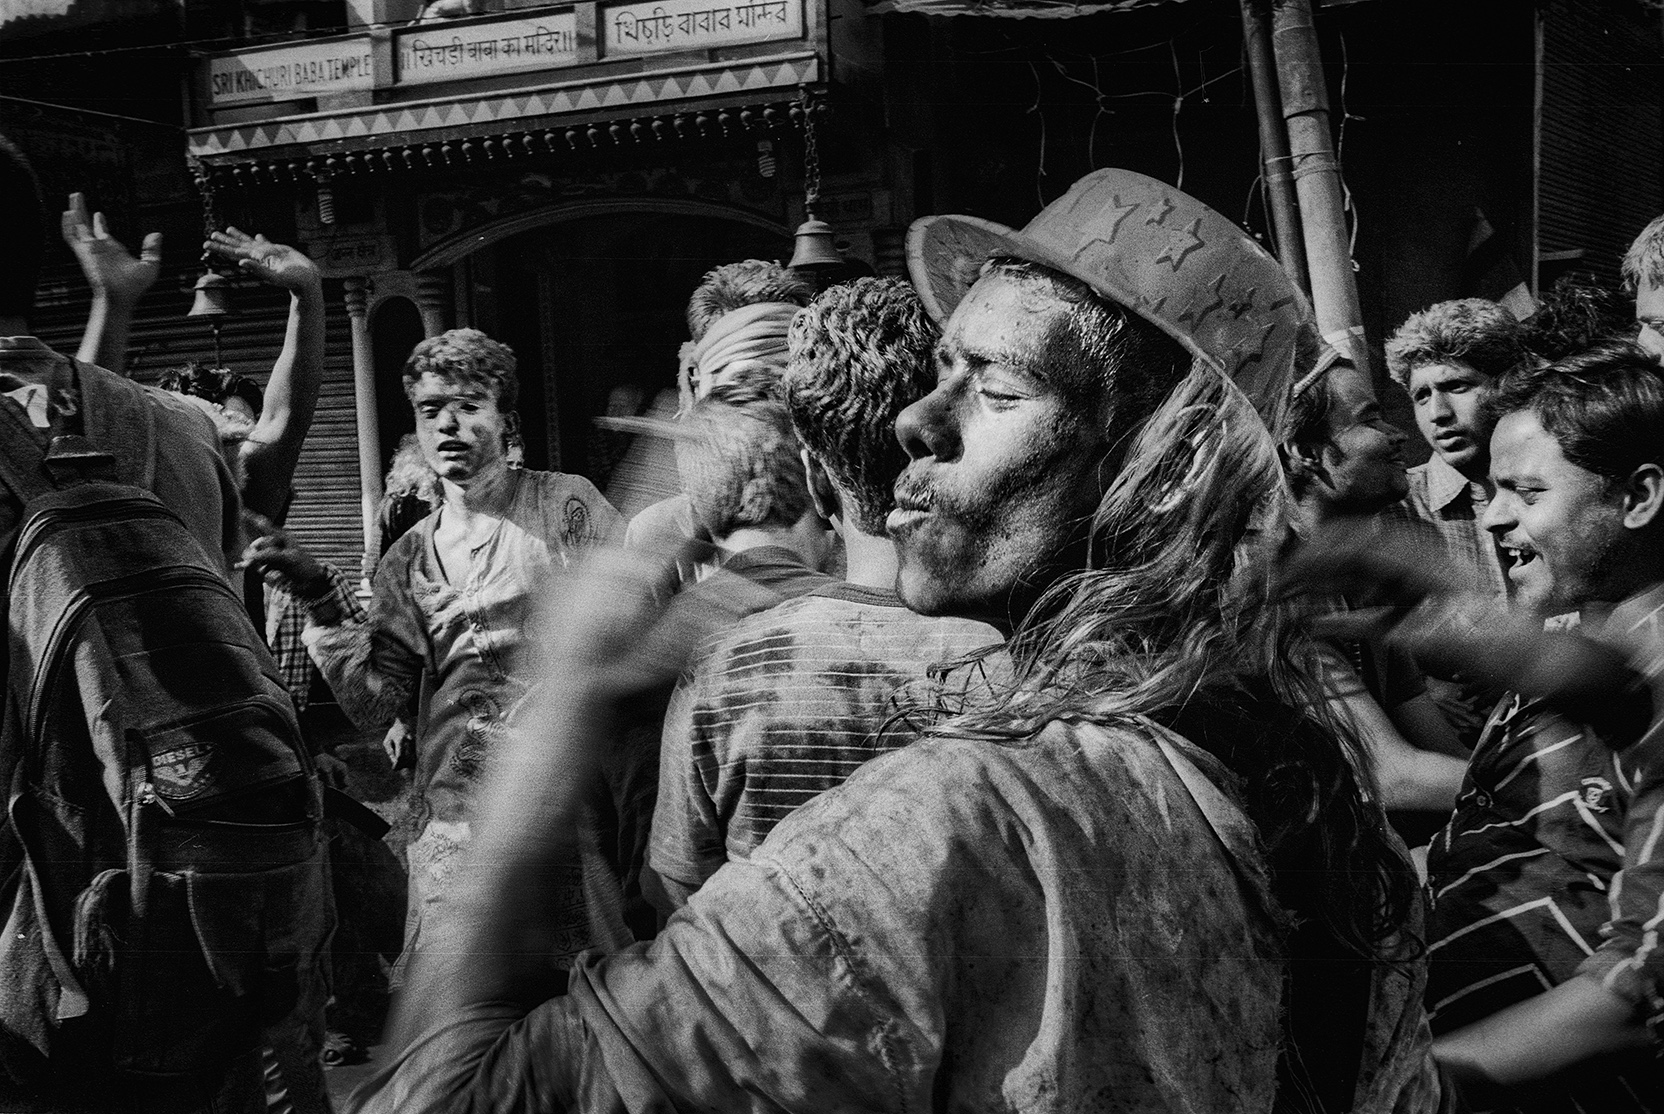 """Holi Festival"" Varanasi, India                     photo copyright : Russell Shakespeare 2015"